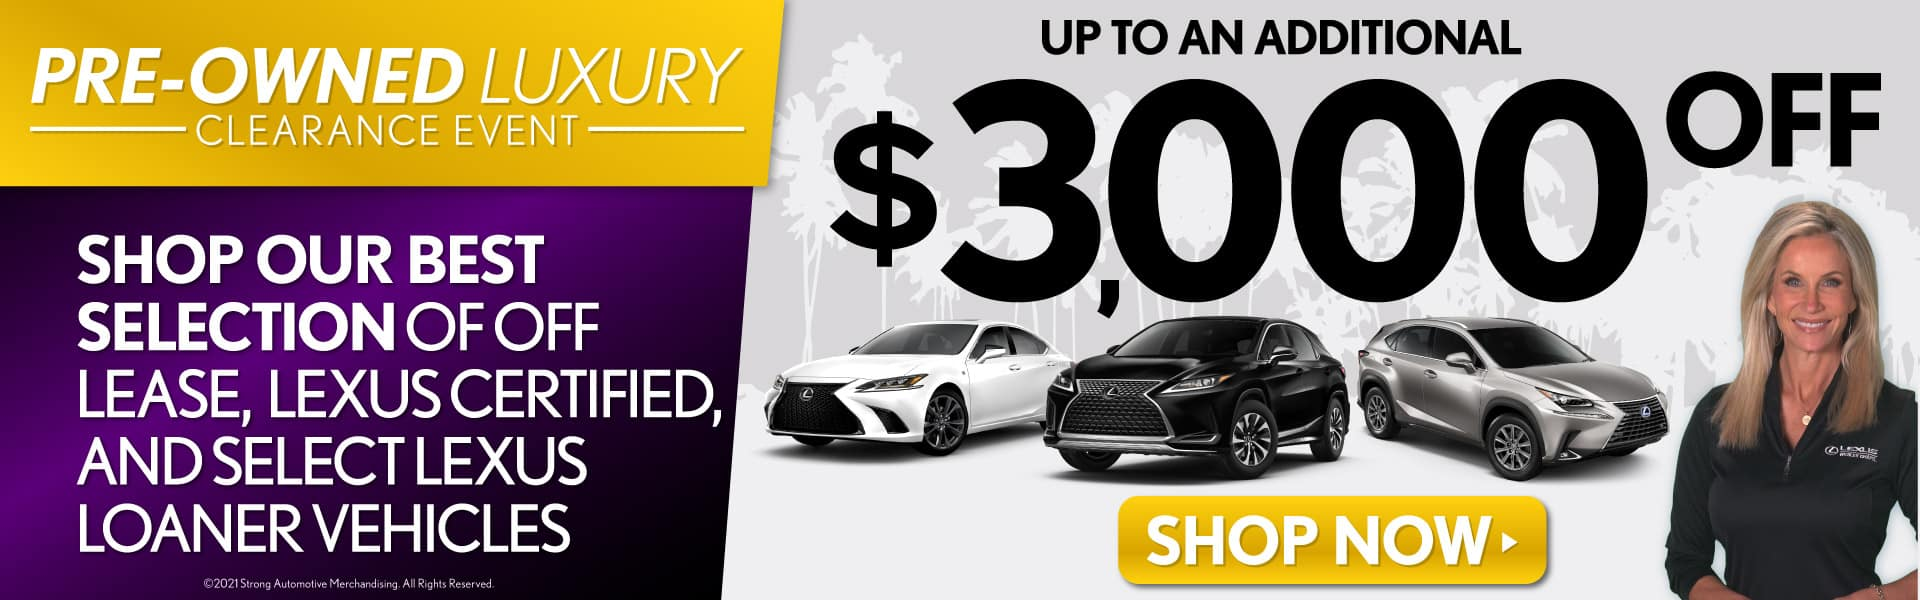 Shop Our Best Selection of Off Lease, CPO, and Loaner Vehicles | Up to an additional $3,000 off | Shop Now